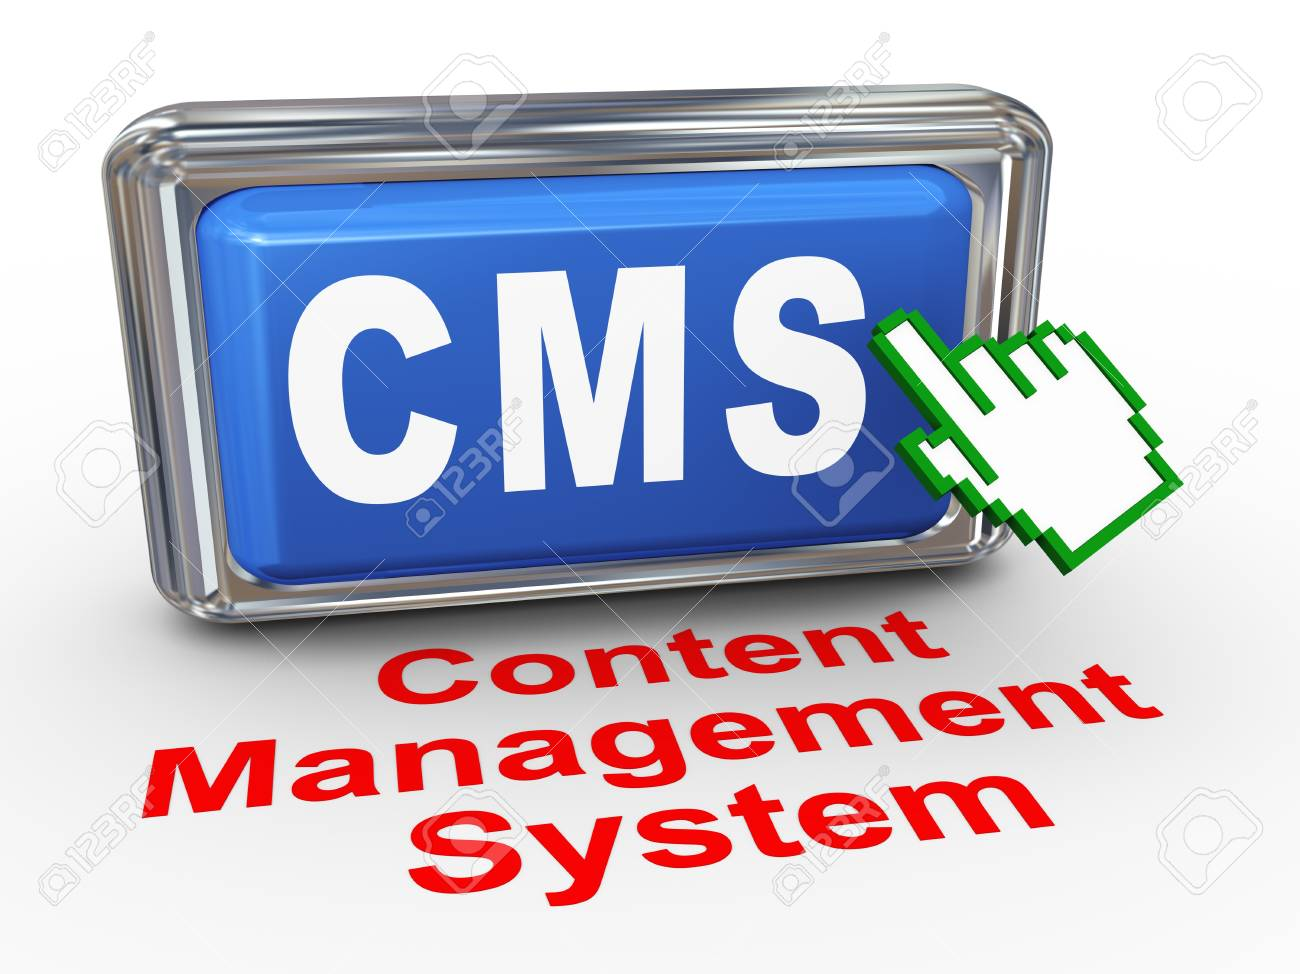 3d render of hand cursor pointer click on button with phrase cms - content management system Stock Photo - 18101643